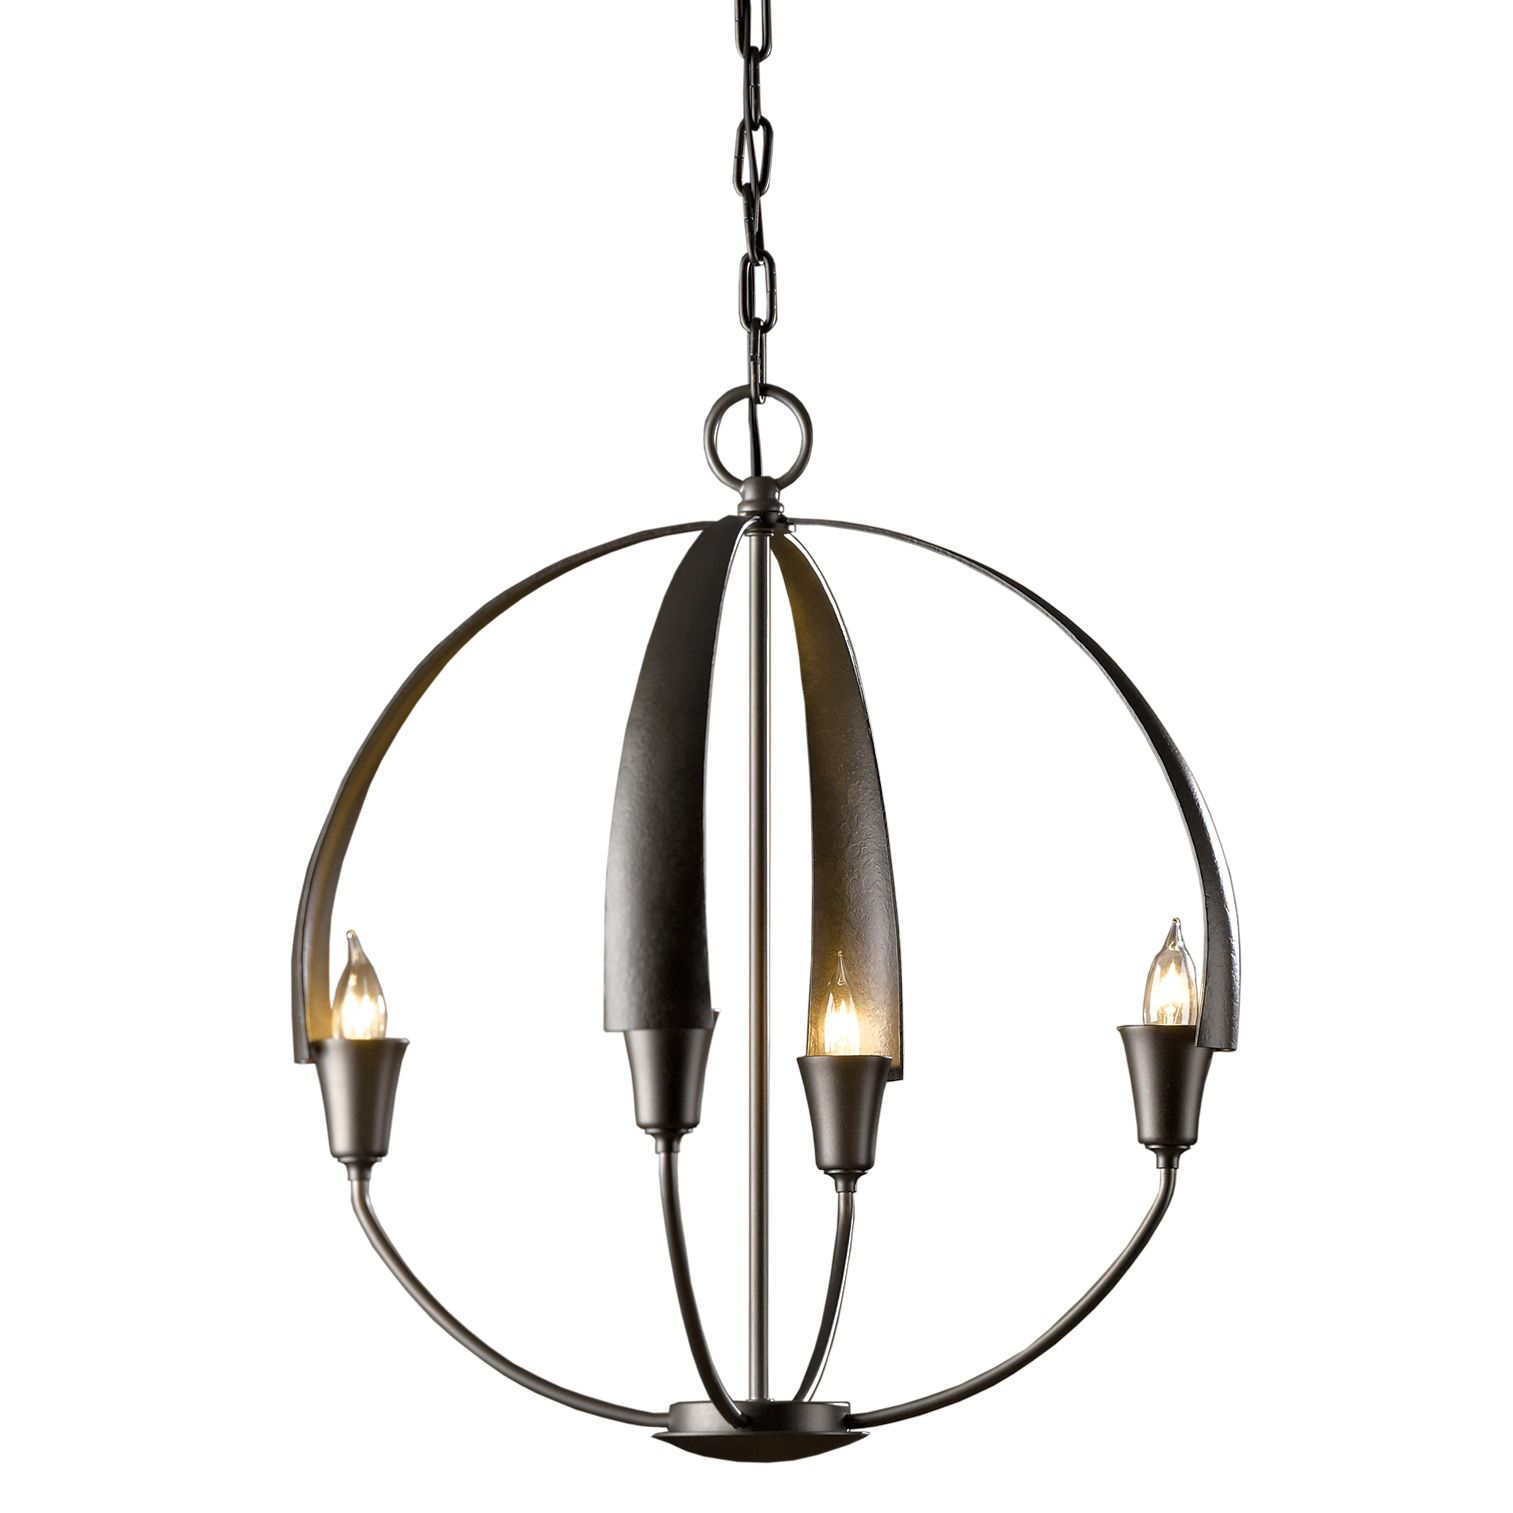 Cirque Chandelier Hubbardton Forge at Lightology